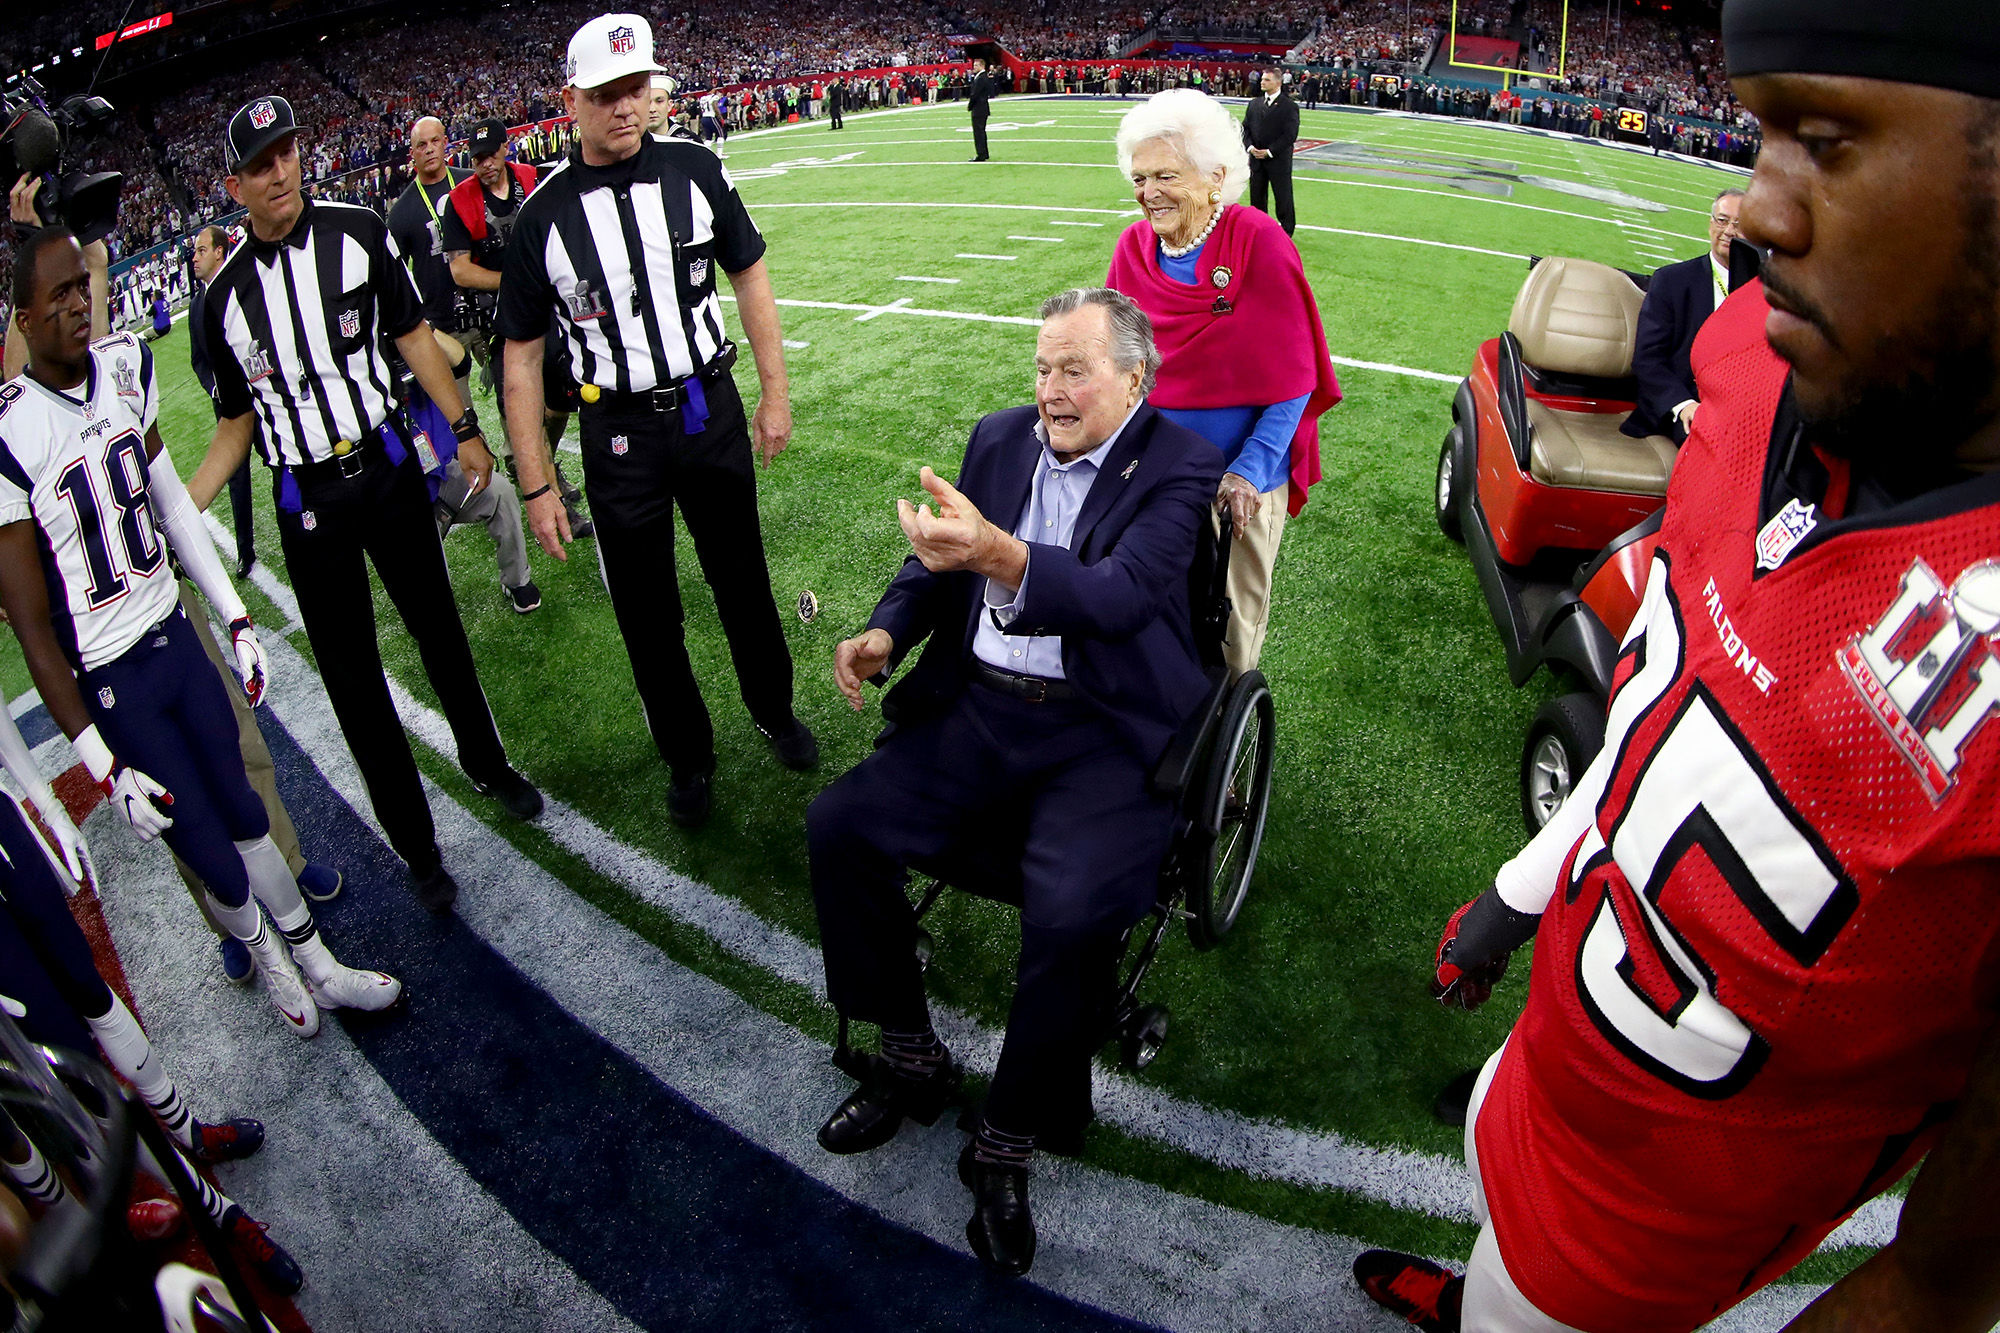 Former President George H.W. Bush and Barbara Get Massive Applause at Super Bowl After Hospitalization